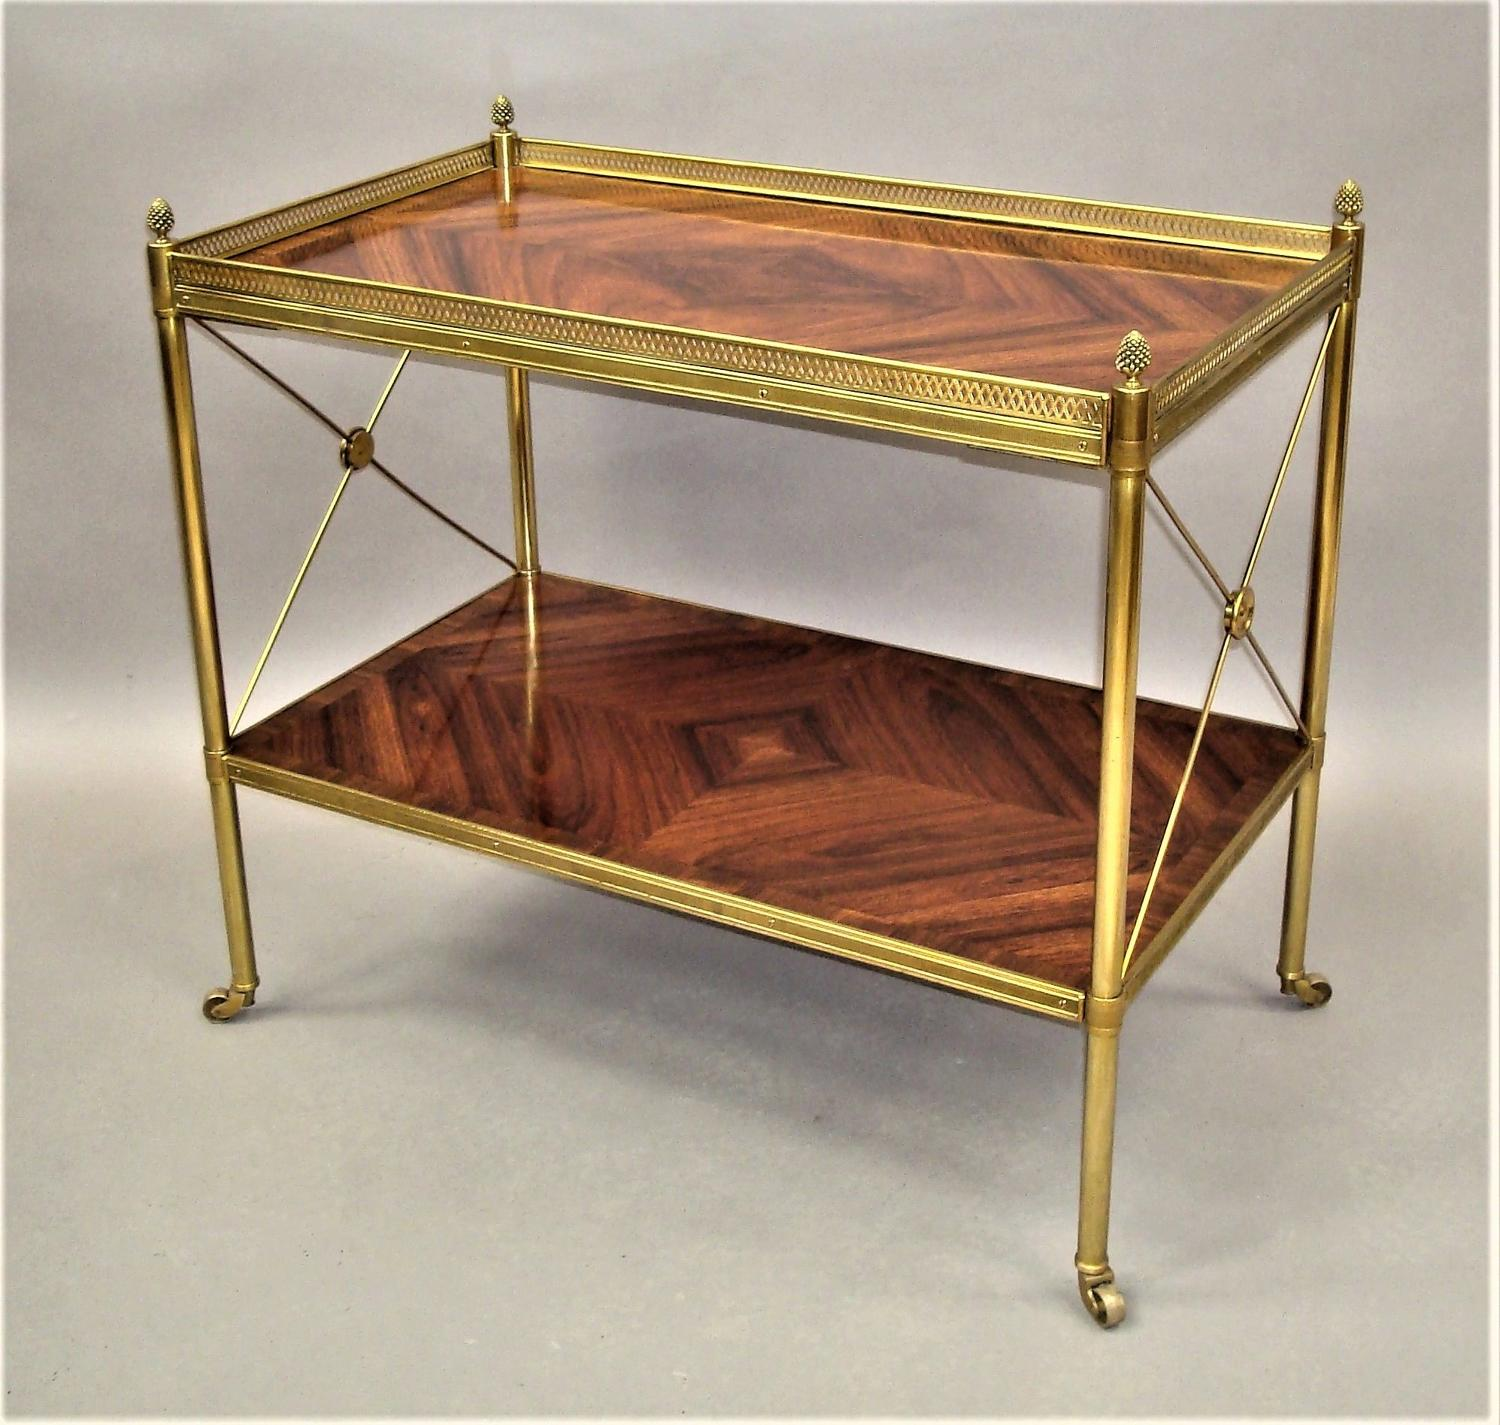 C20th French Kingwood Etagere